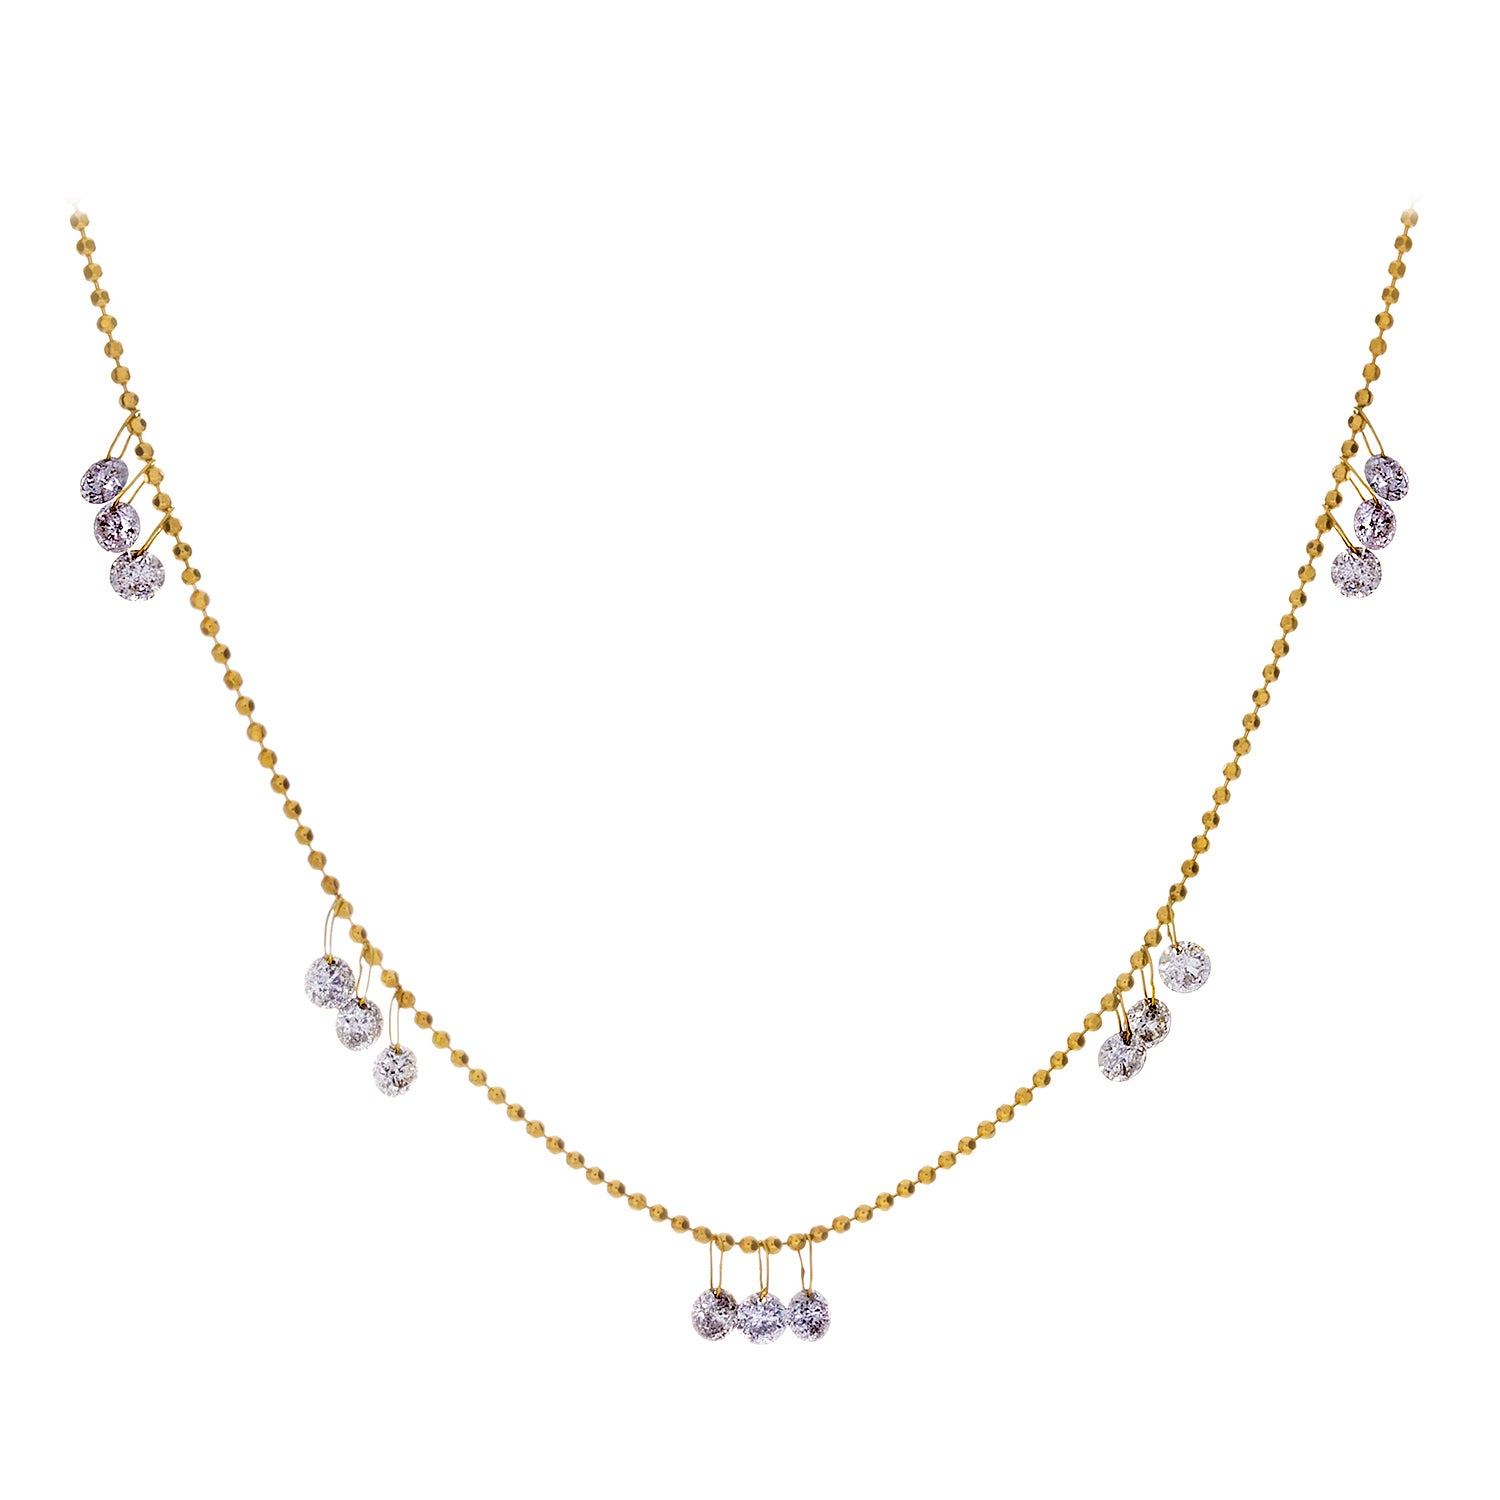 Floating Diamonds & 18K Yellow Gold Necklace